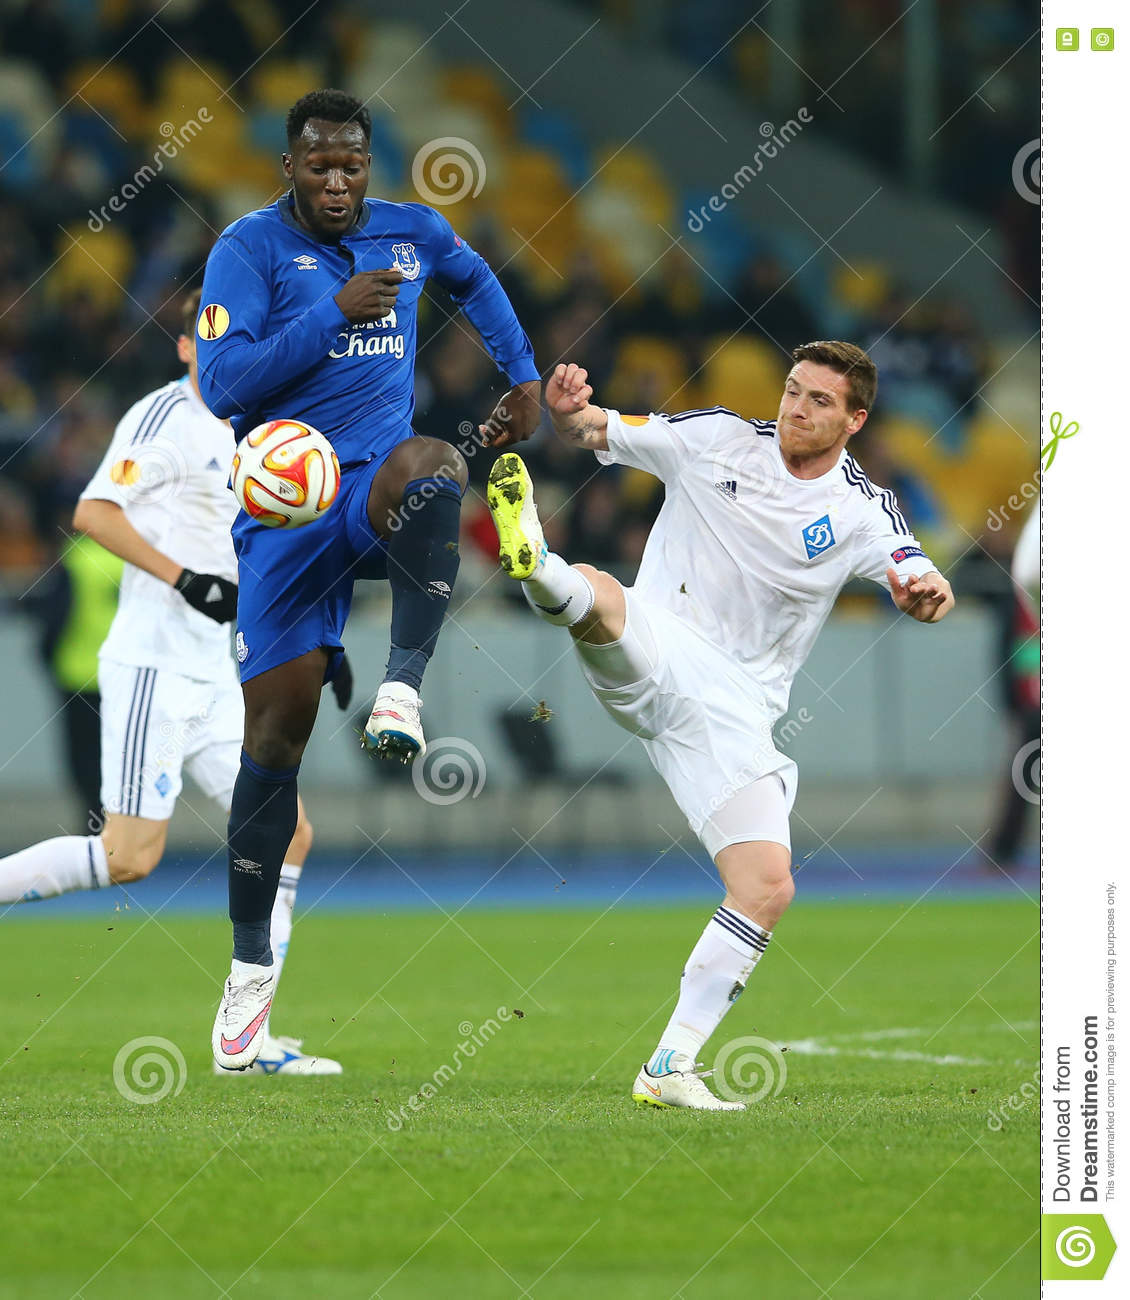 Romelu Lukaku and Antunes battle for ball, UEFA Europa League Round of 16 second leg match between Dynamo and Everton